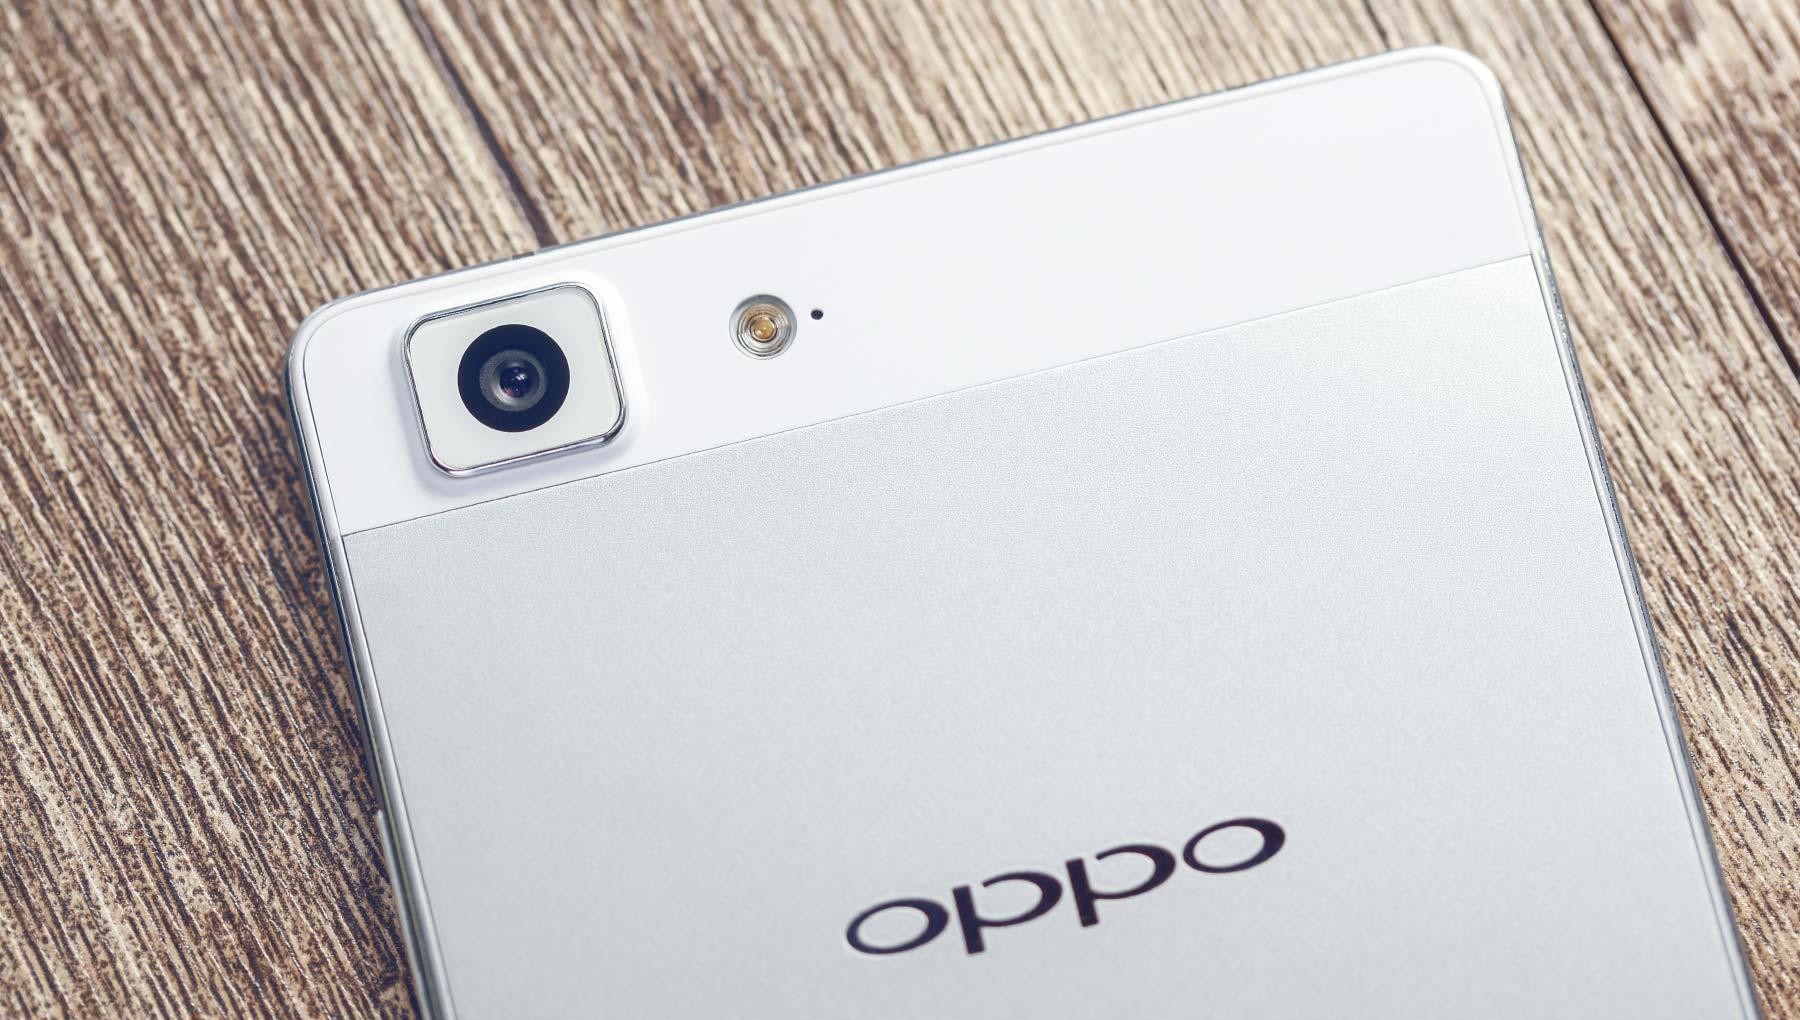 oppo r7 to be announced soon